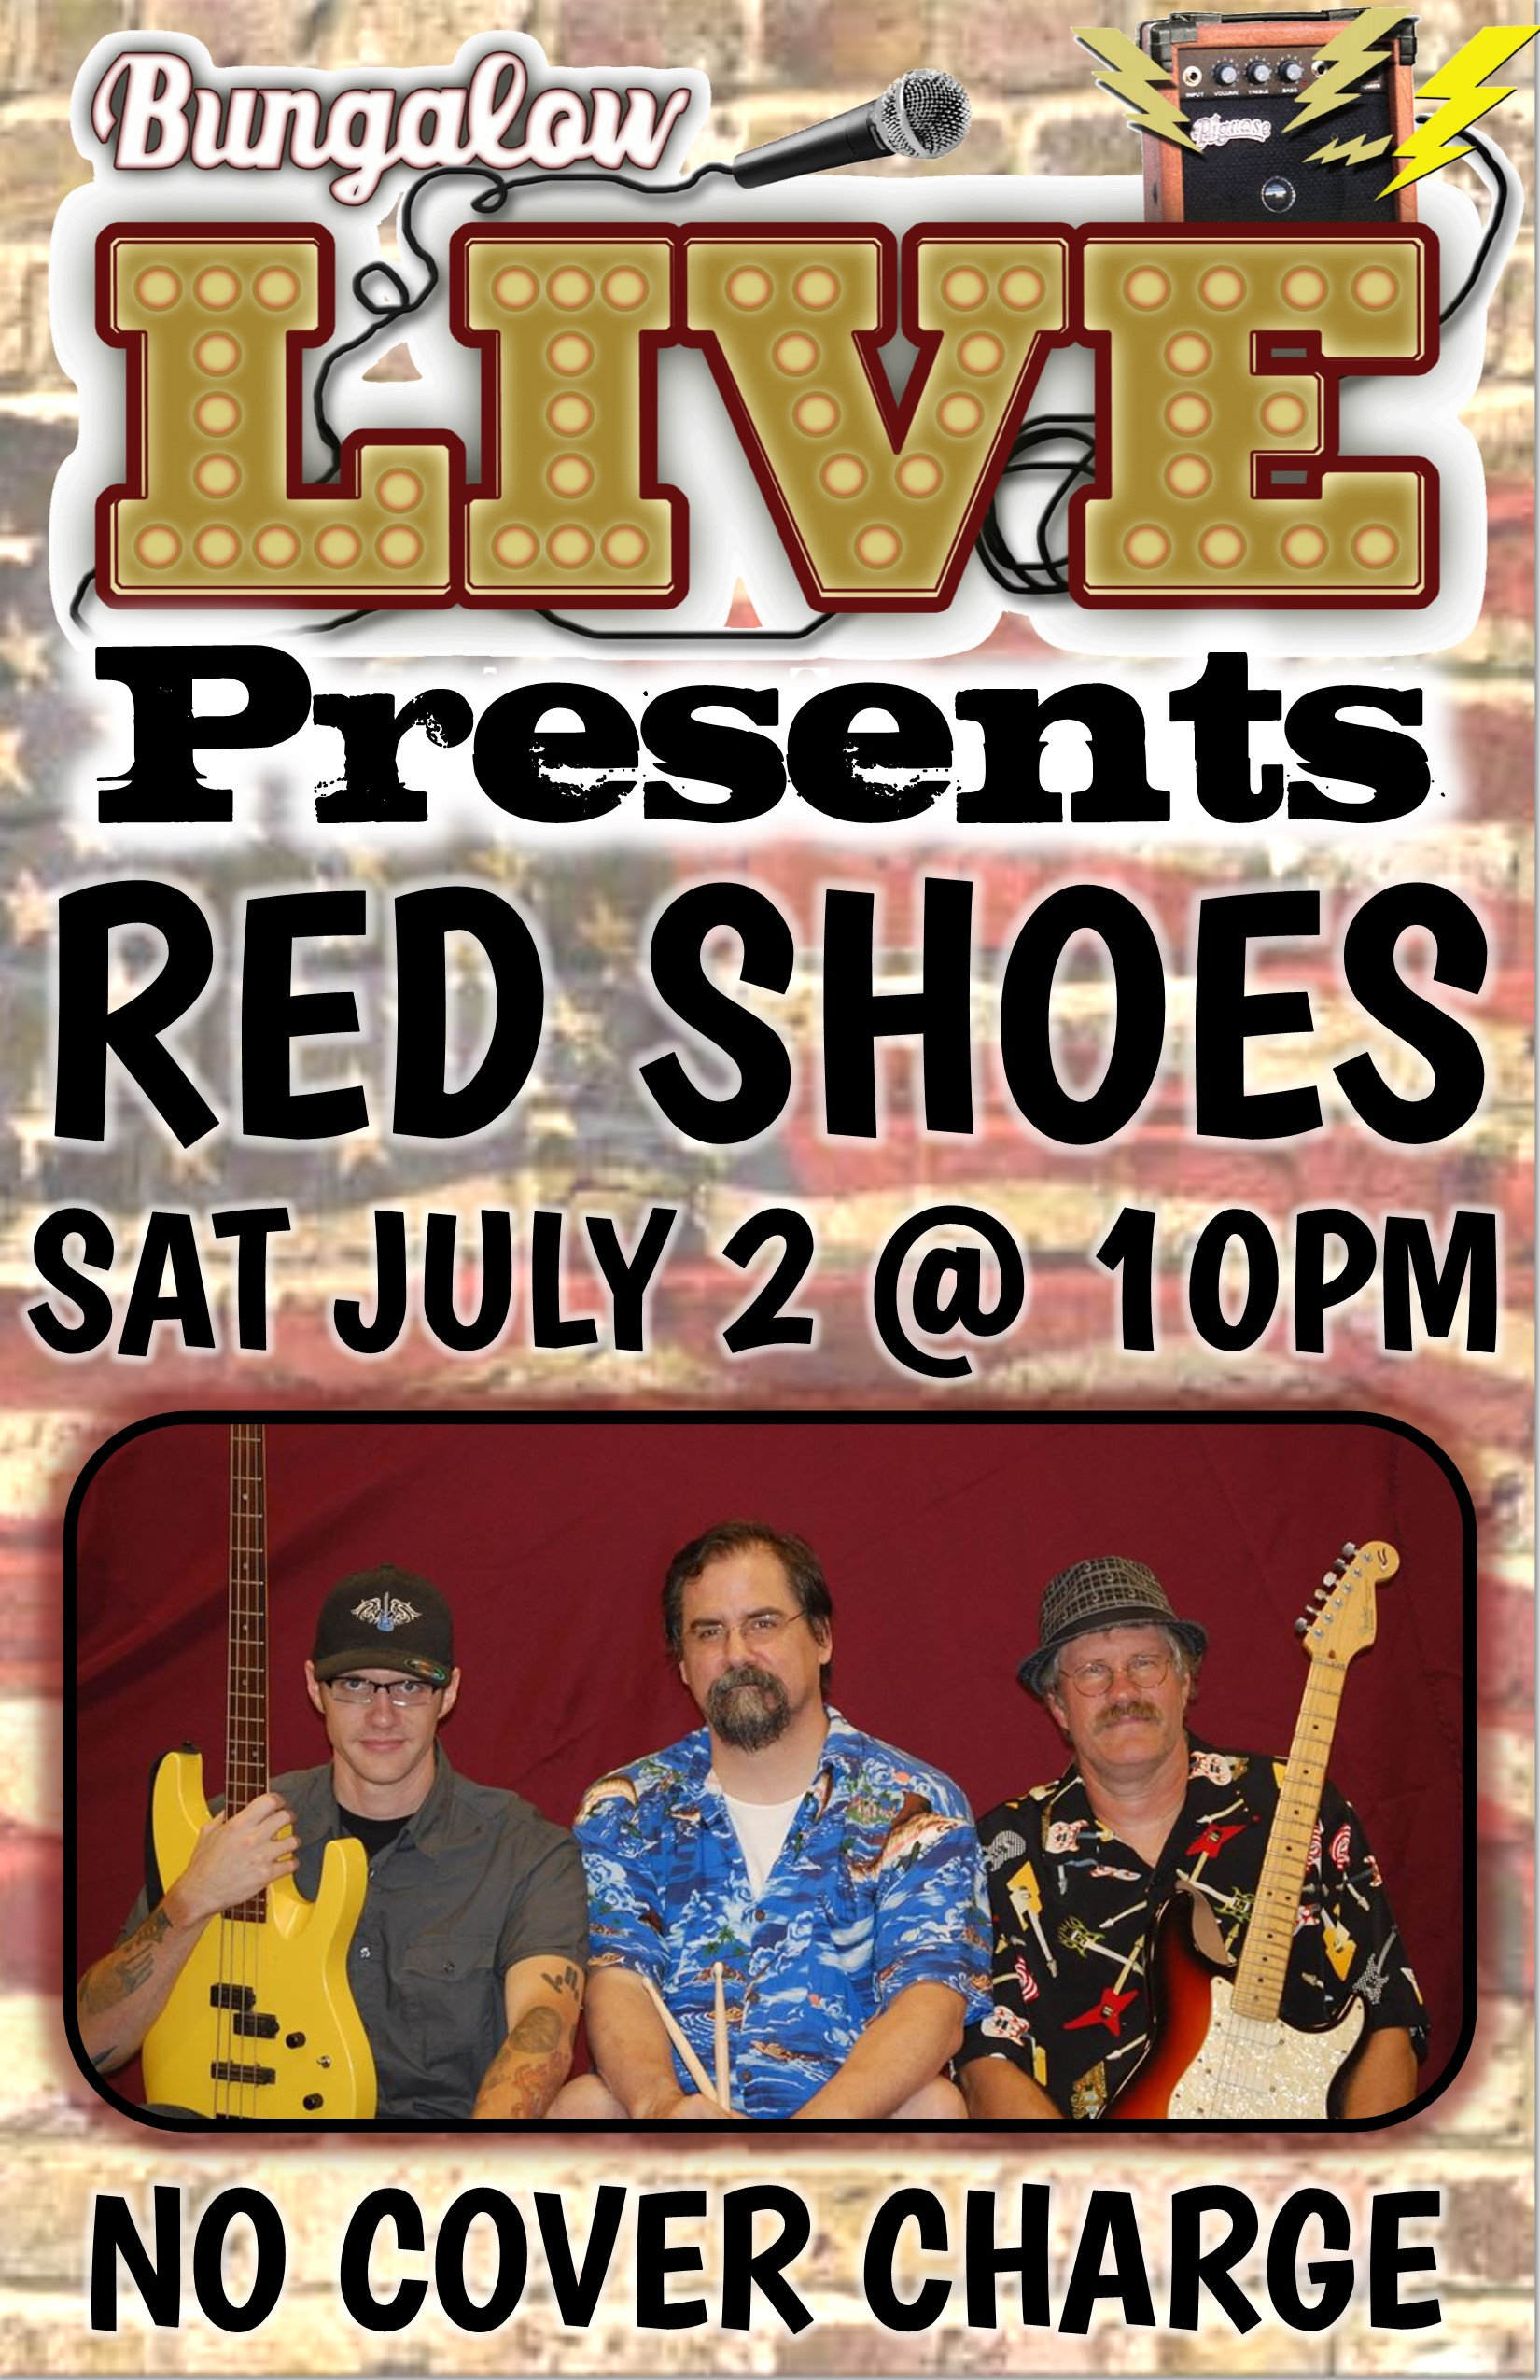 RED SHOES JULY 2 2016 11X17